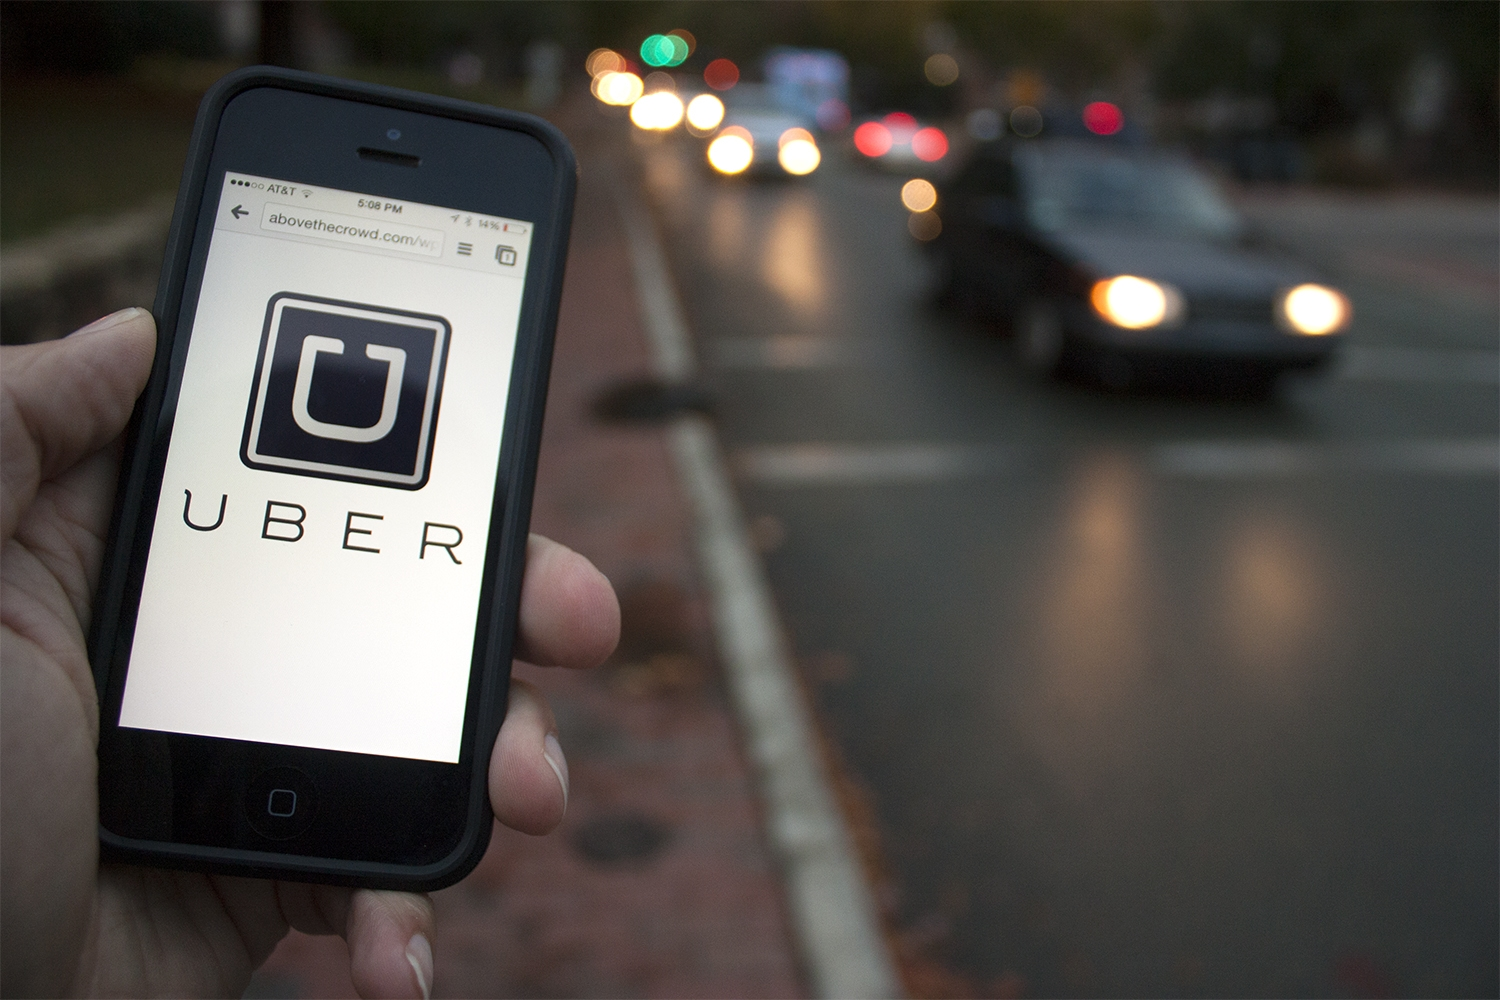 Uber Isn't Just Uber—Five Uber Services You May Not Know About